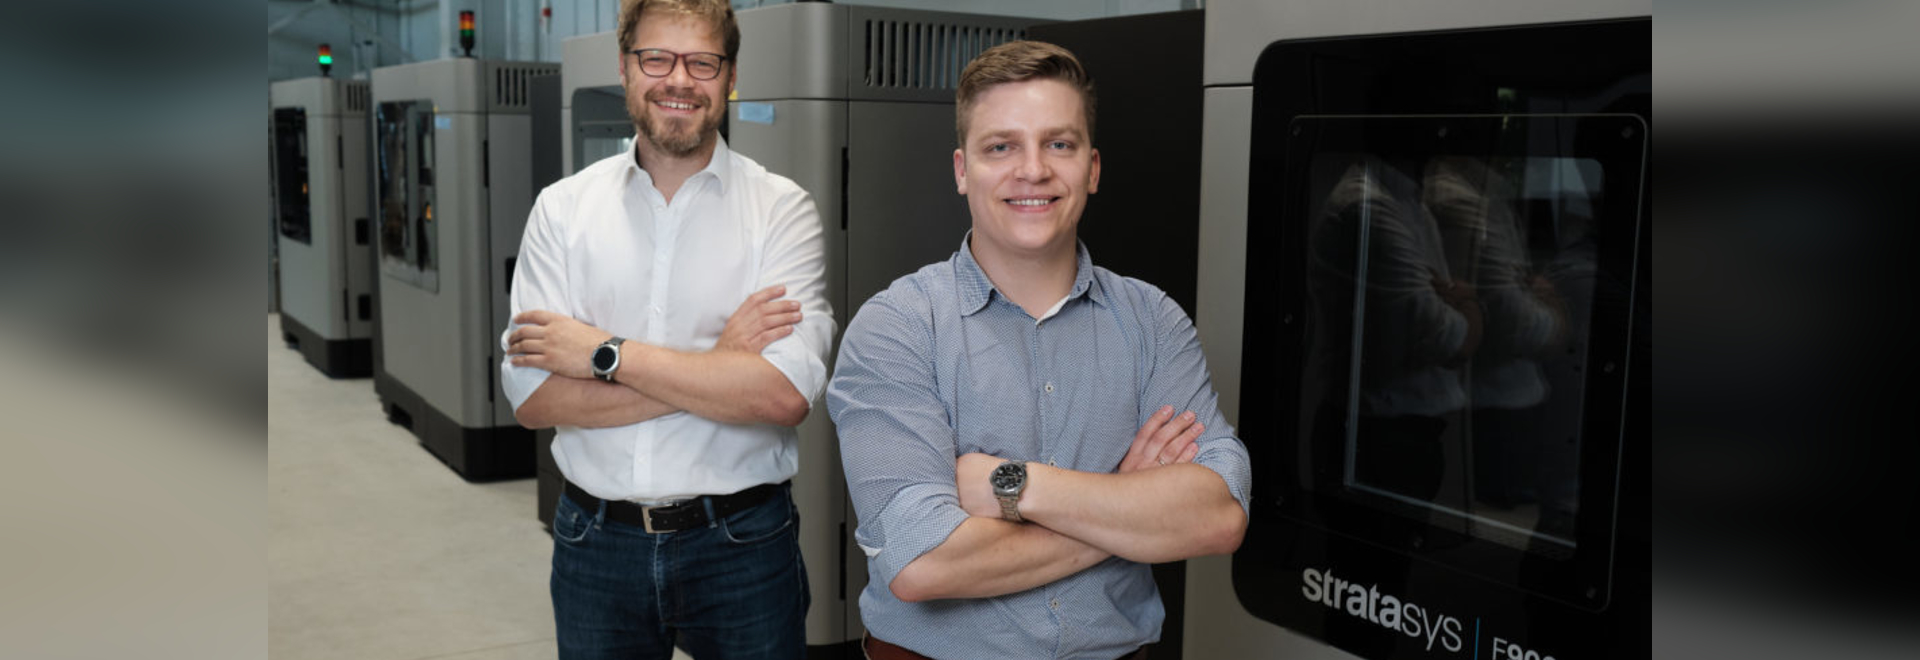 AM Craft co-founders Jānis Jātnieks (right) and Didzis Dejus in front of the service provider's four large-scale production-grade Stratasys F900 3D Printers